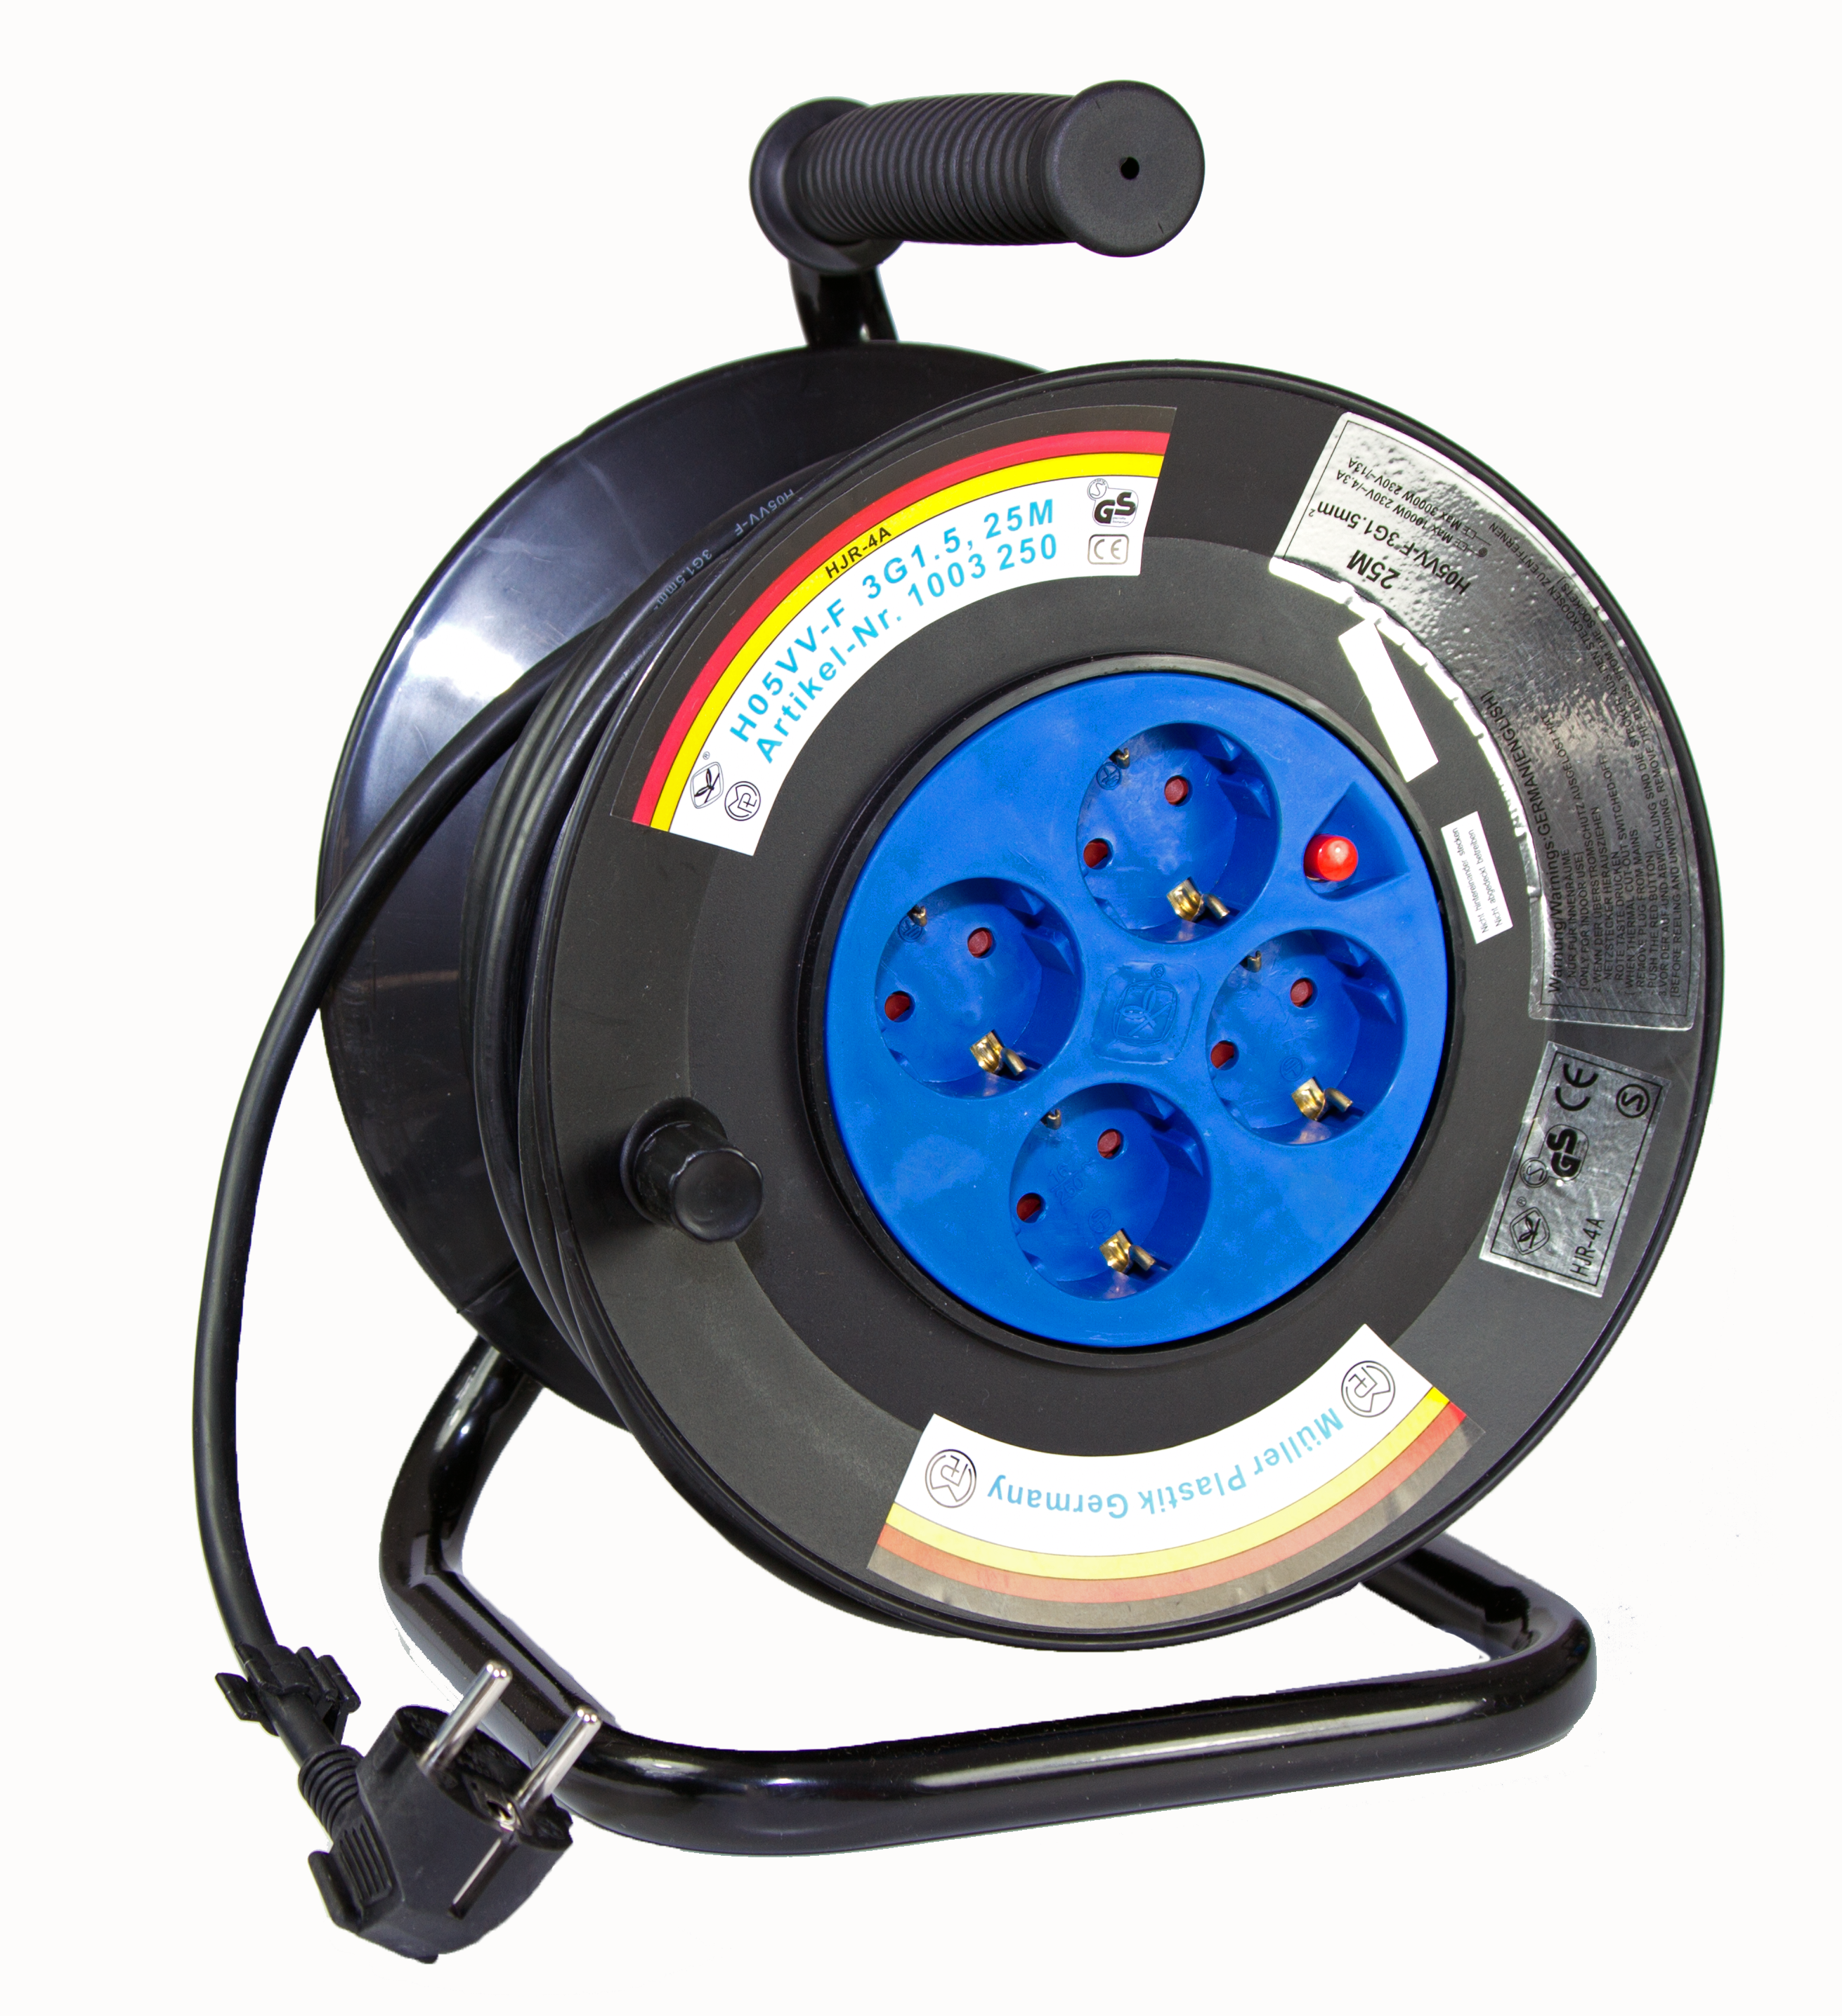 Cable Reels Product : Müller plastik gmbh cable reel reels electro